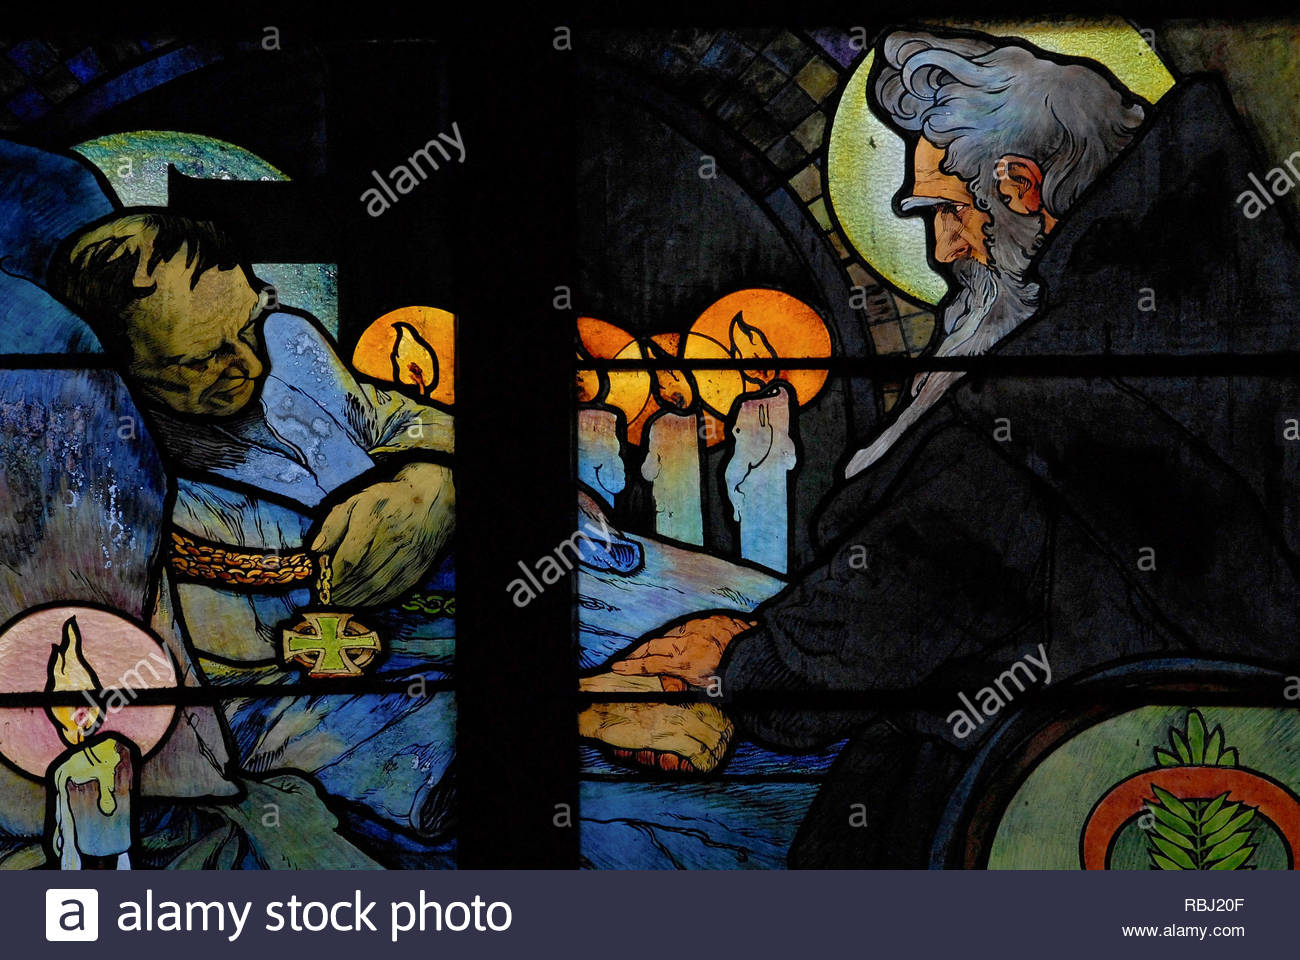 Prague, Czech Republic: death of St. Cyril - detail, Alfons Mucha 1931 Art Nouveau cathedral glass on 'Apostles to the Slavs', SS. Cyril & Methodius. - Stock Image